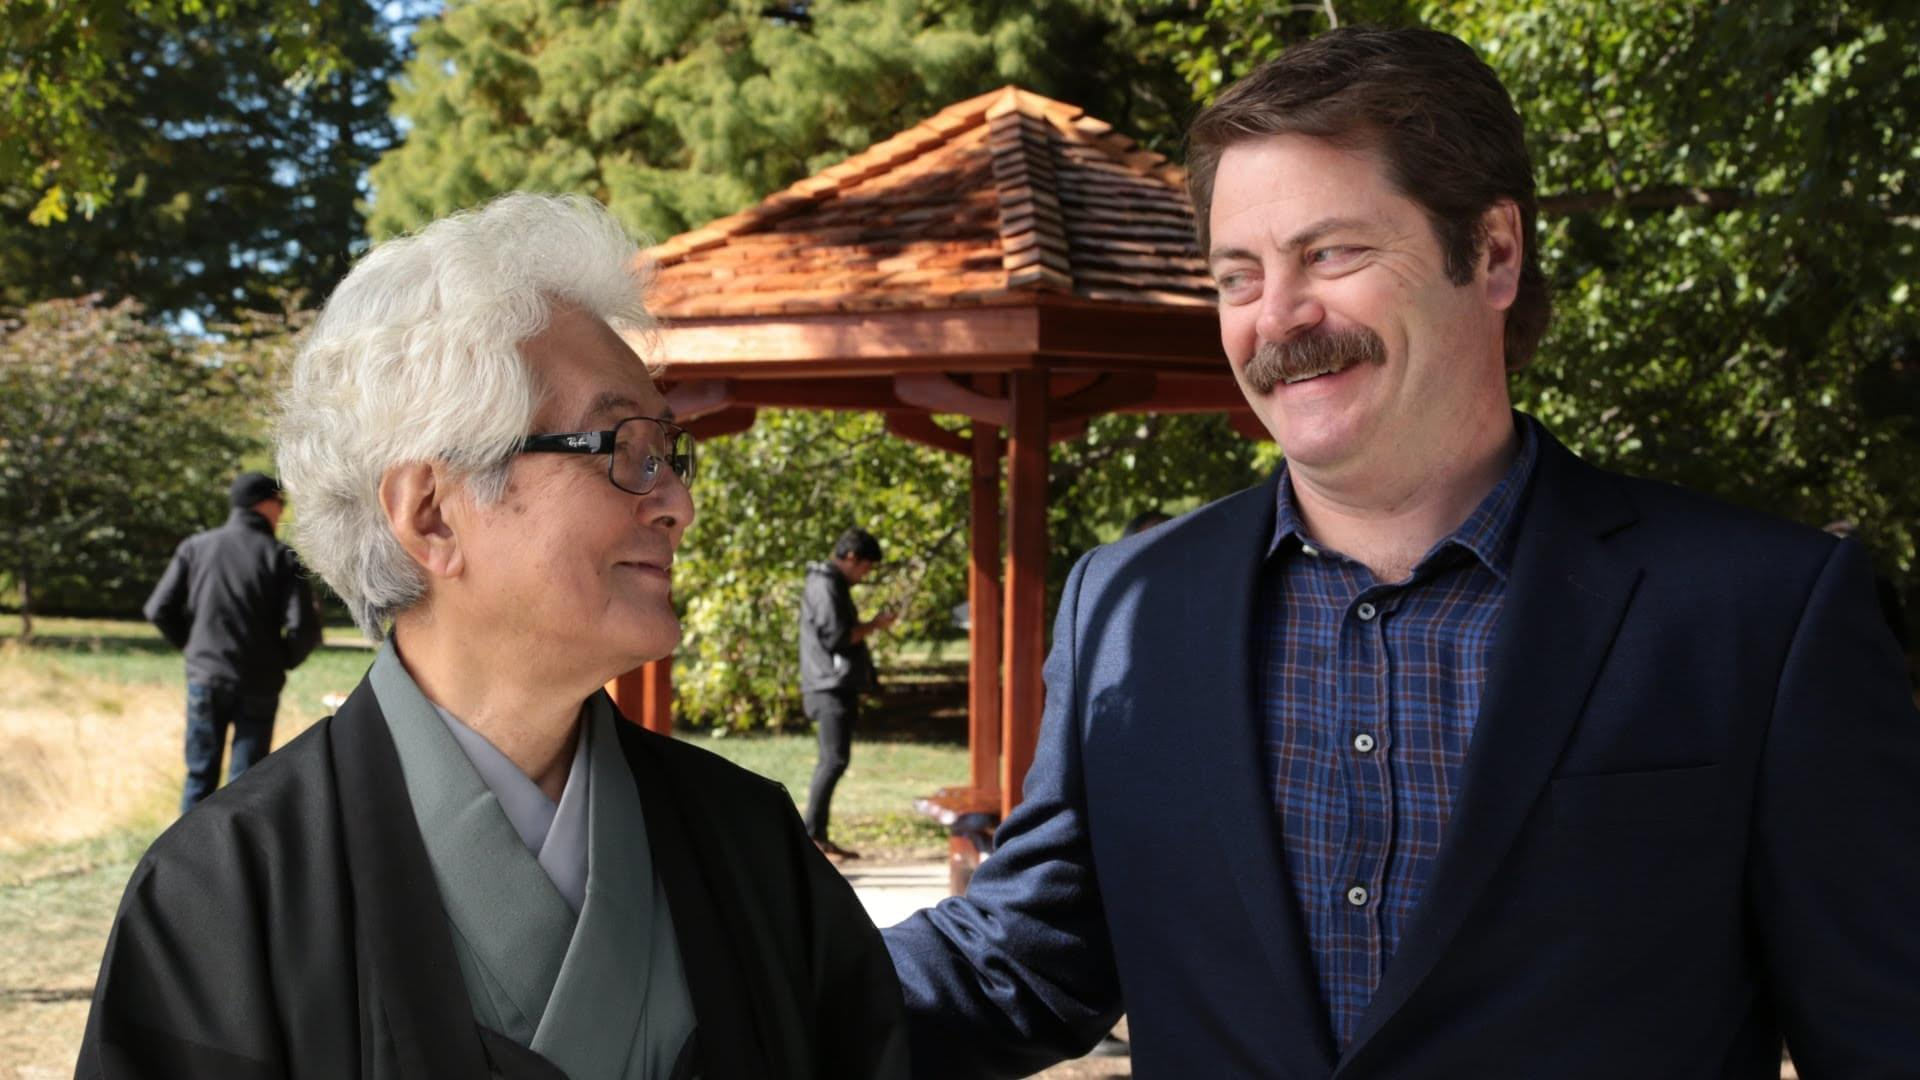 Actor Nick Offerman (right) stands with mentor and U of I professor emeritus Shozo Sato in front of a gazebo the Offerman helped to build for Japan House on the Urbana campus.